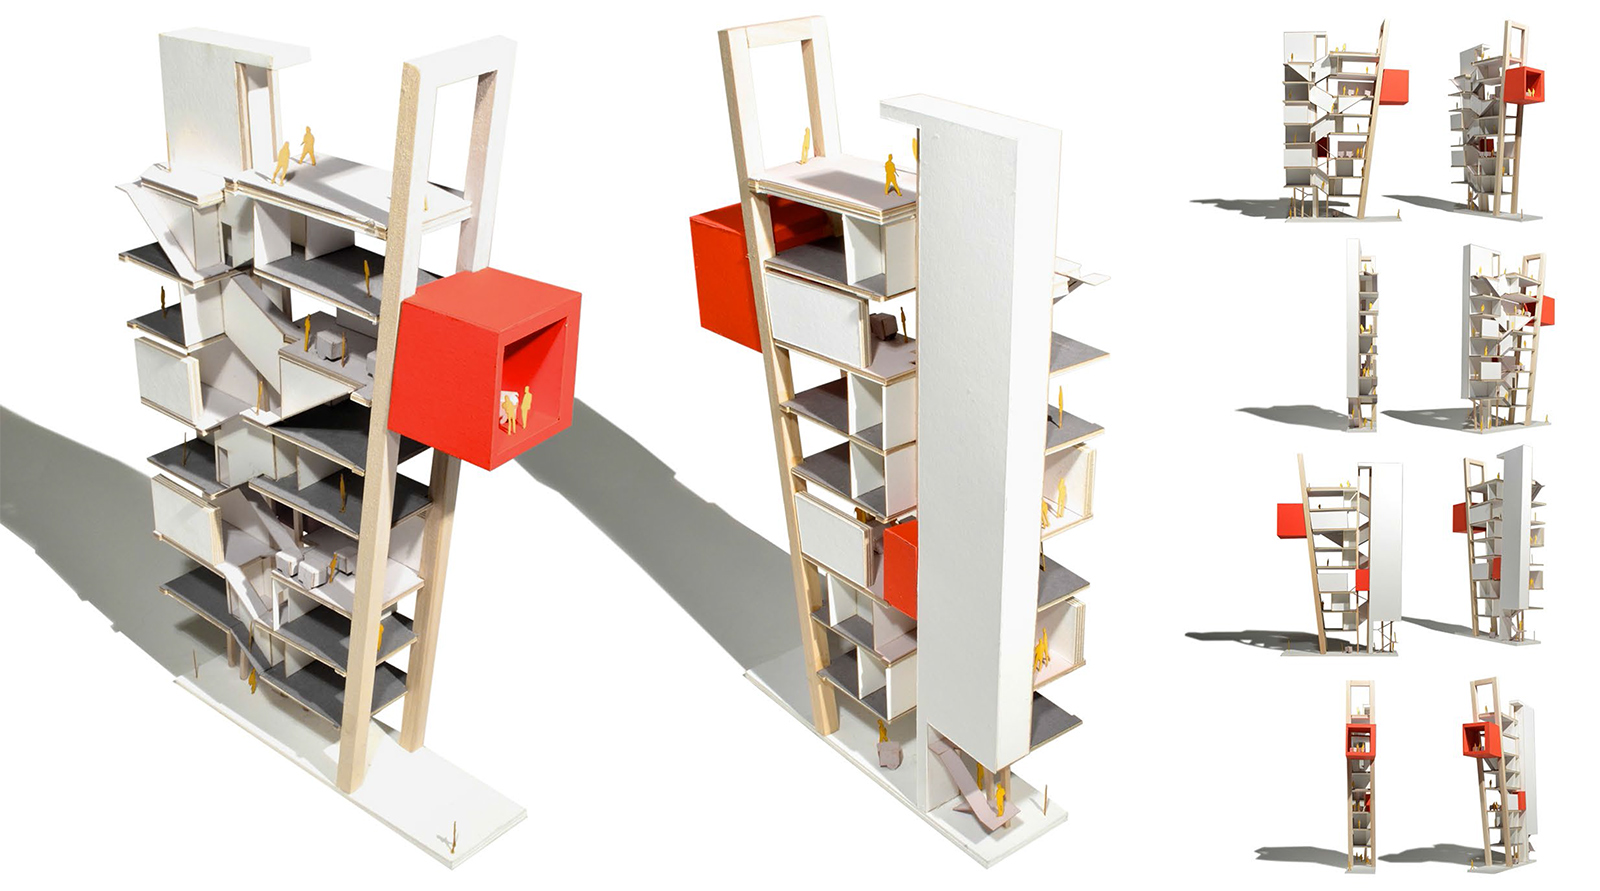 Model images of the CART proposal showing the front and back structures without facades to emphasize the internal functions